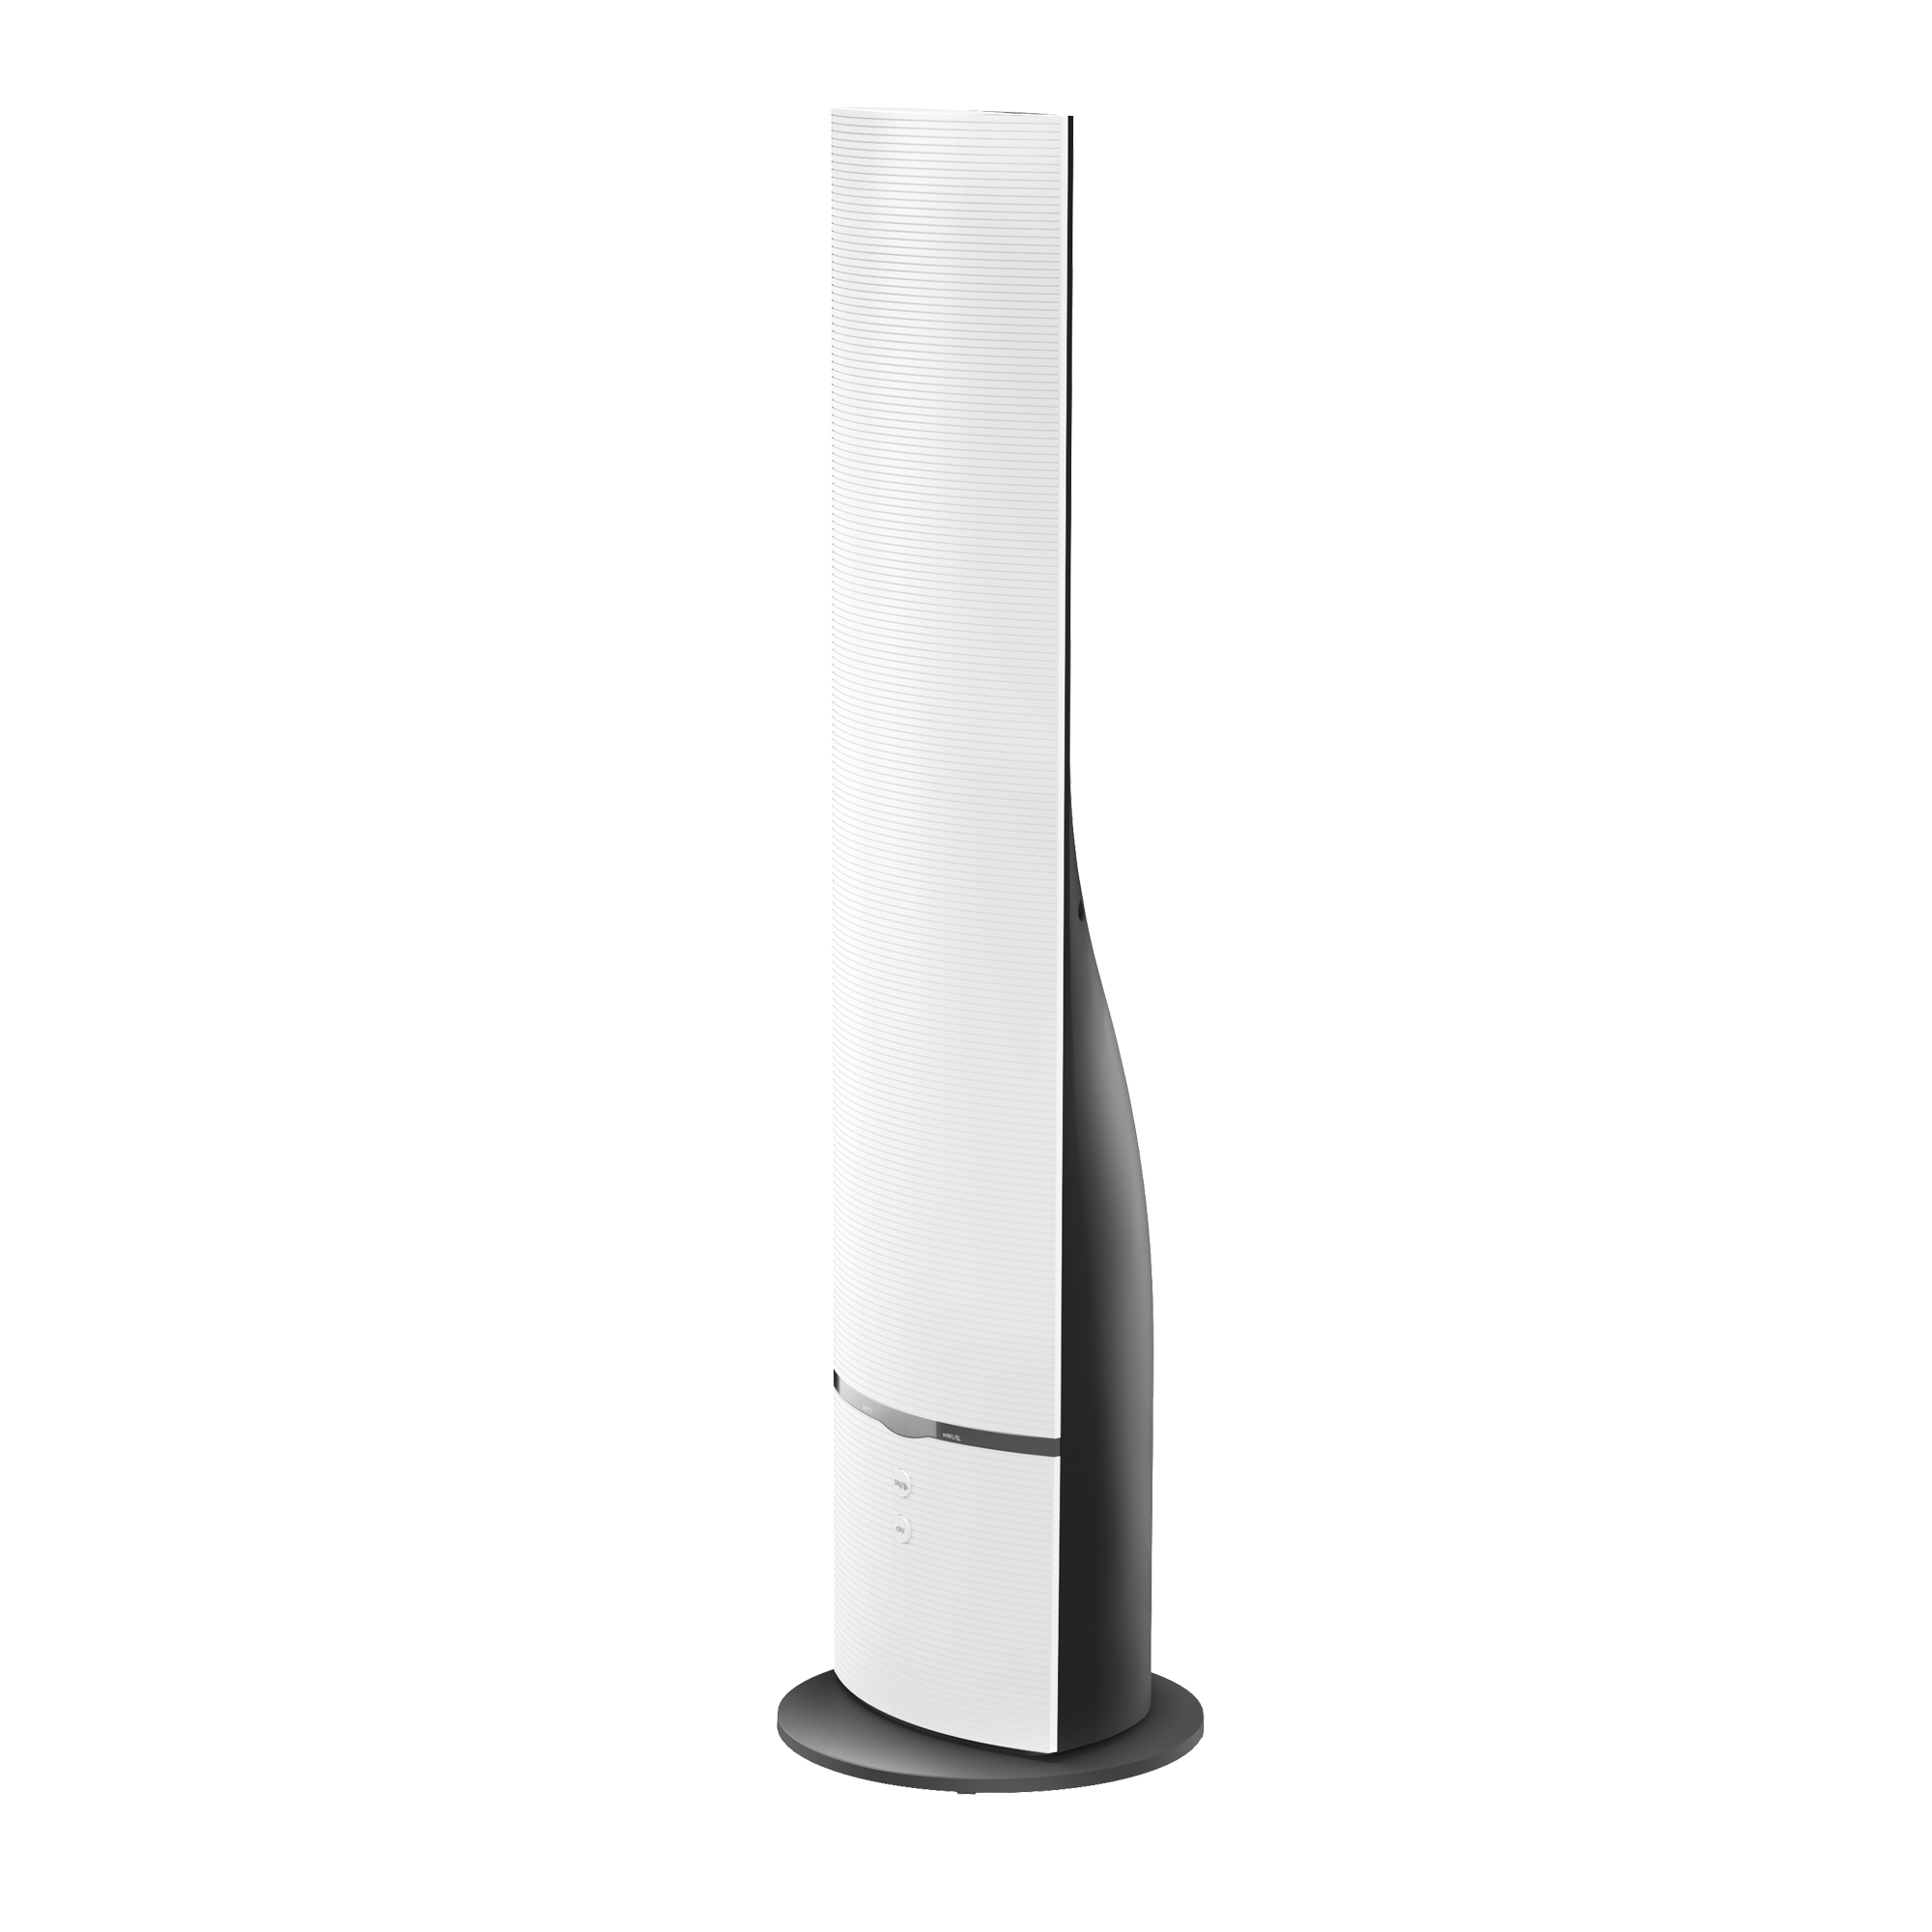 medium resolution of h9 hybrid tower humidifier